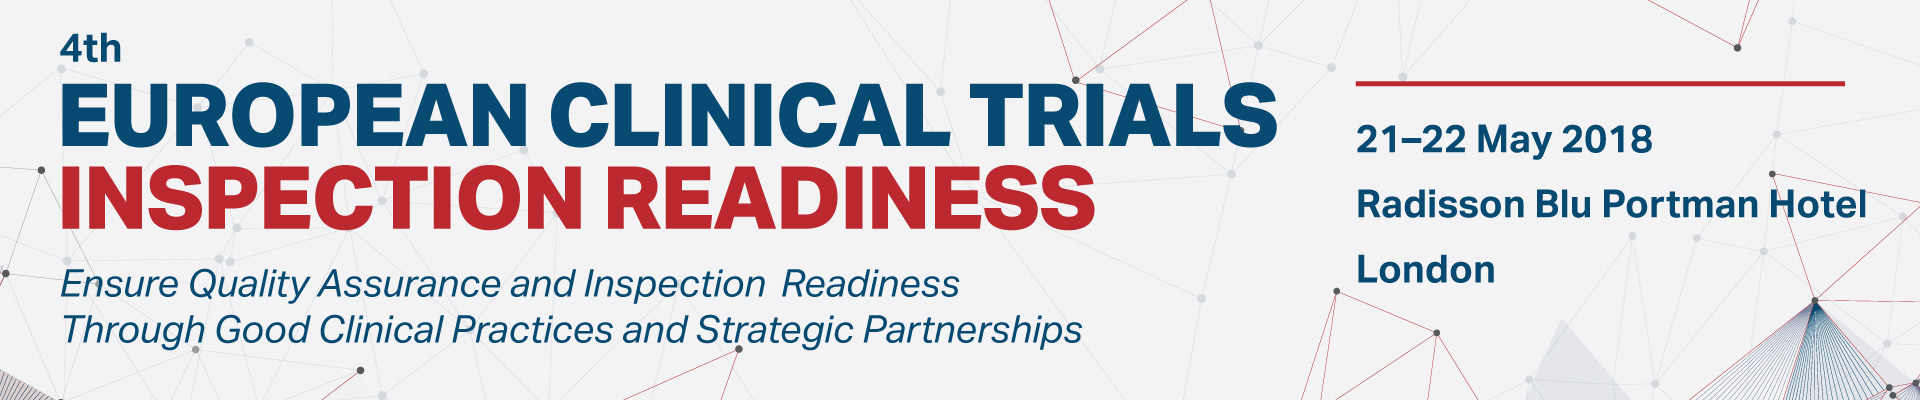 4th European Clinical Trials Inspection Readiness Summit